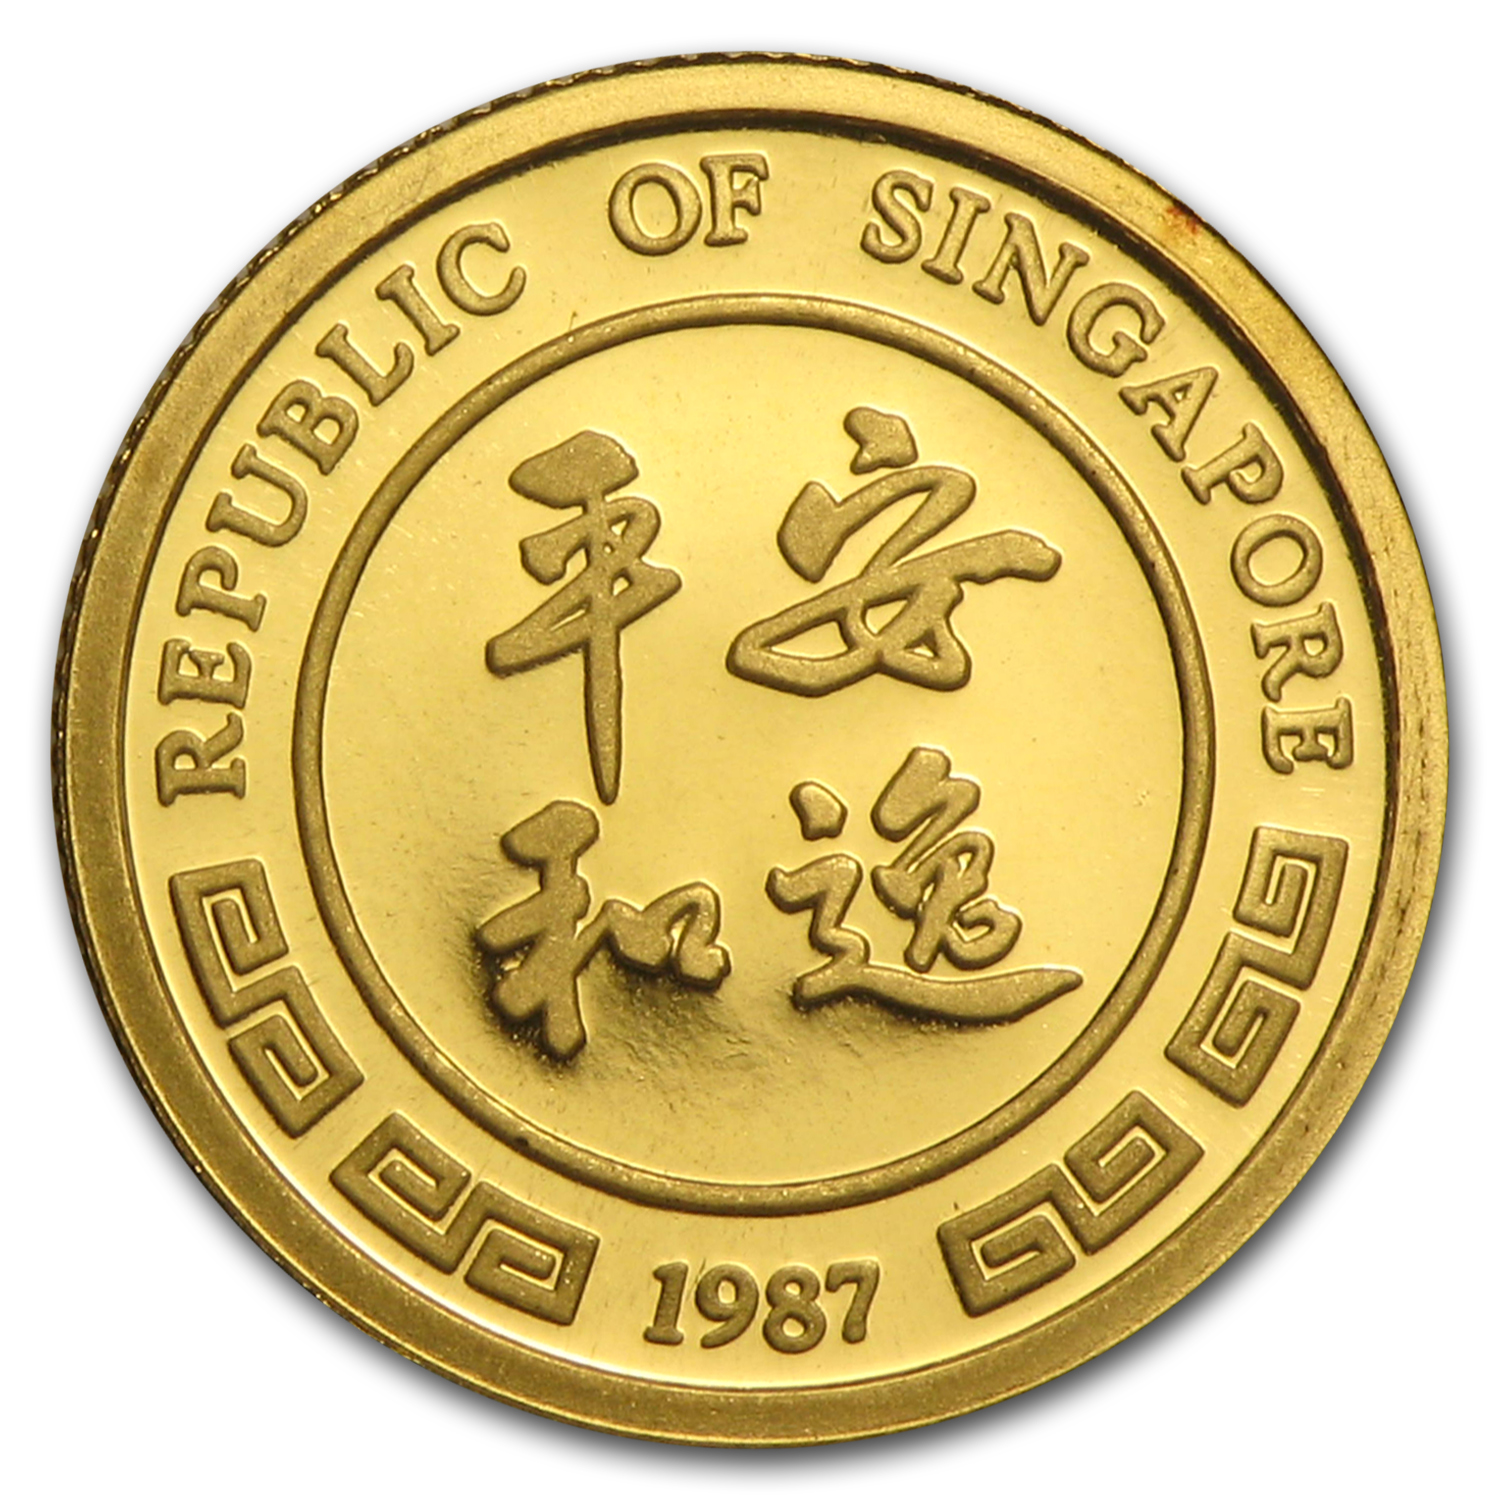 1987 Singapore 1/20 oz Proof Gold 5 Singold Rabbit